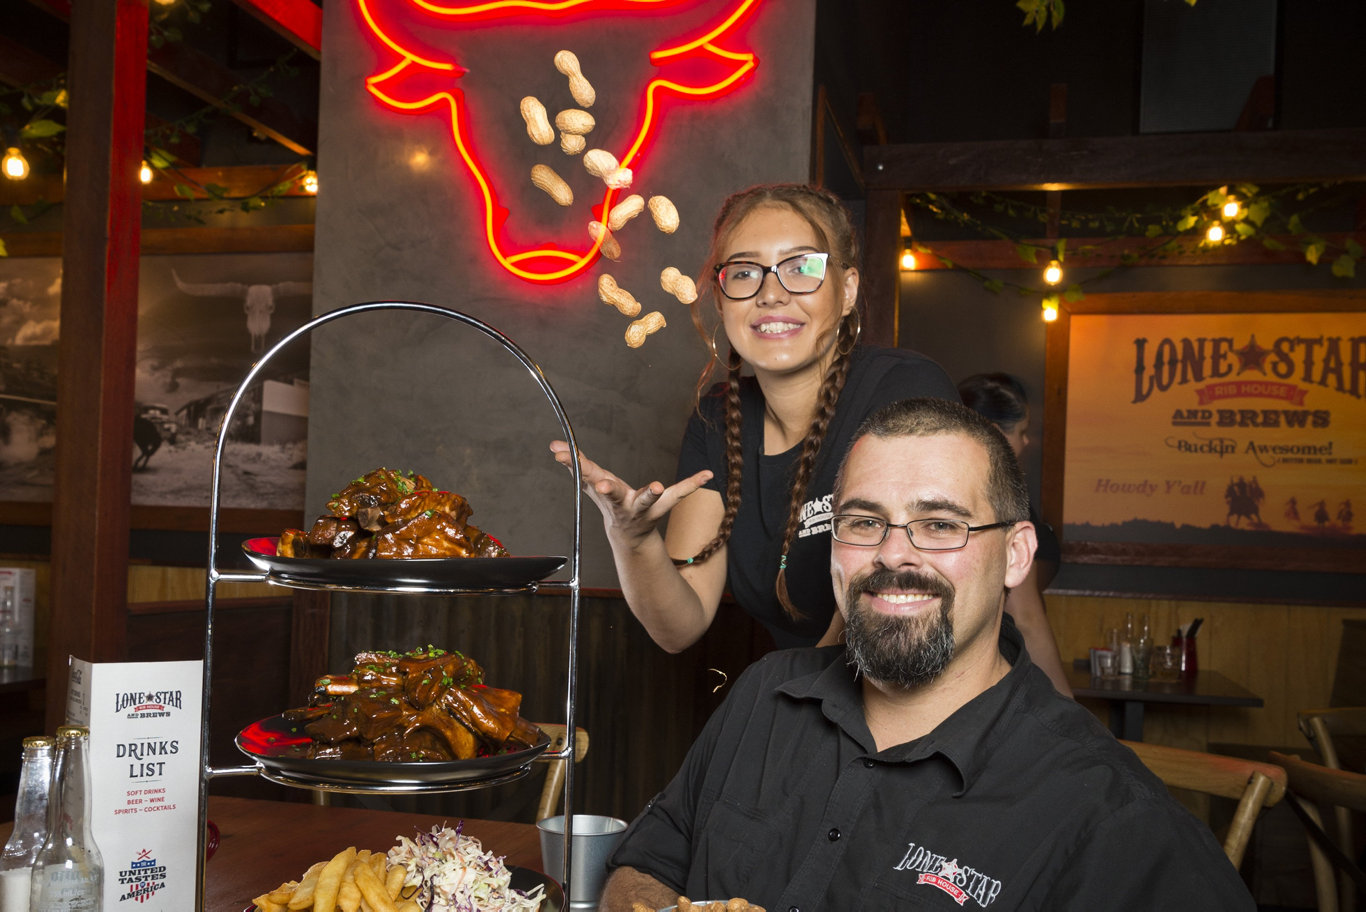 Taylor Trost and Lone Star Rib House Queensland manager Jy Diamond with the Sheriff's Rib Tower for two at the newly opened restaurant in Grand Central, Tuesday, February 18, 2020. Picture: Kevin Farmer